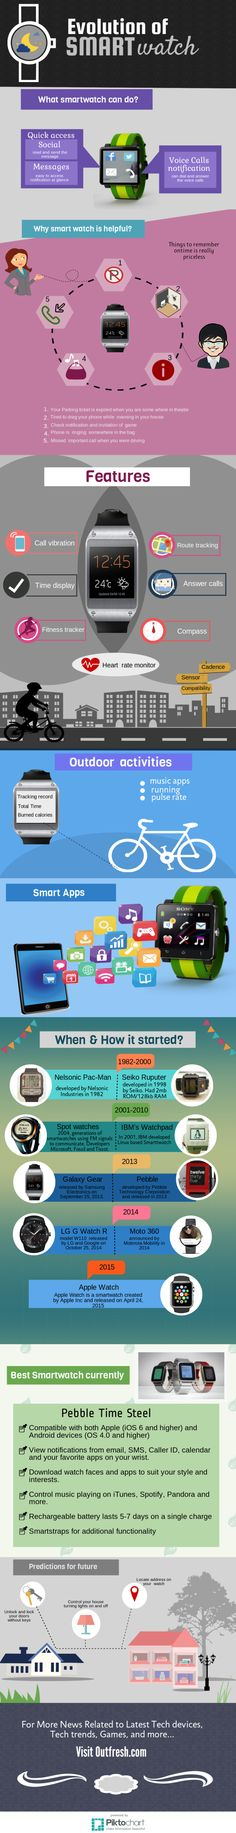 Evolution of Smartwatch from Casio to Apple